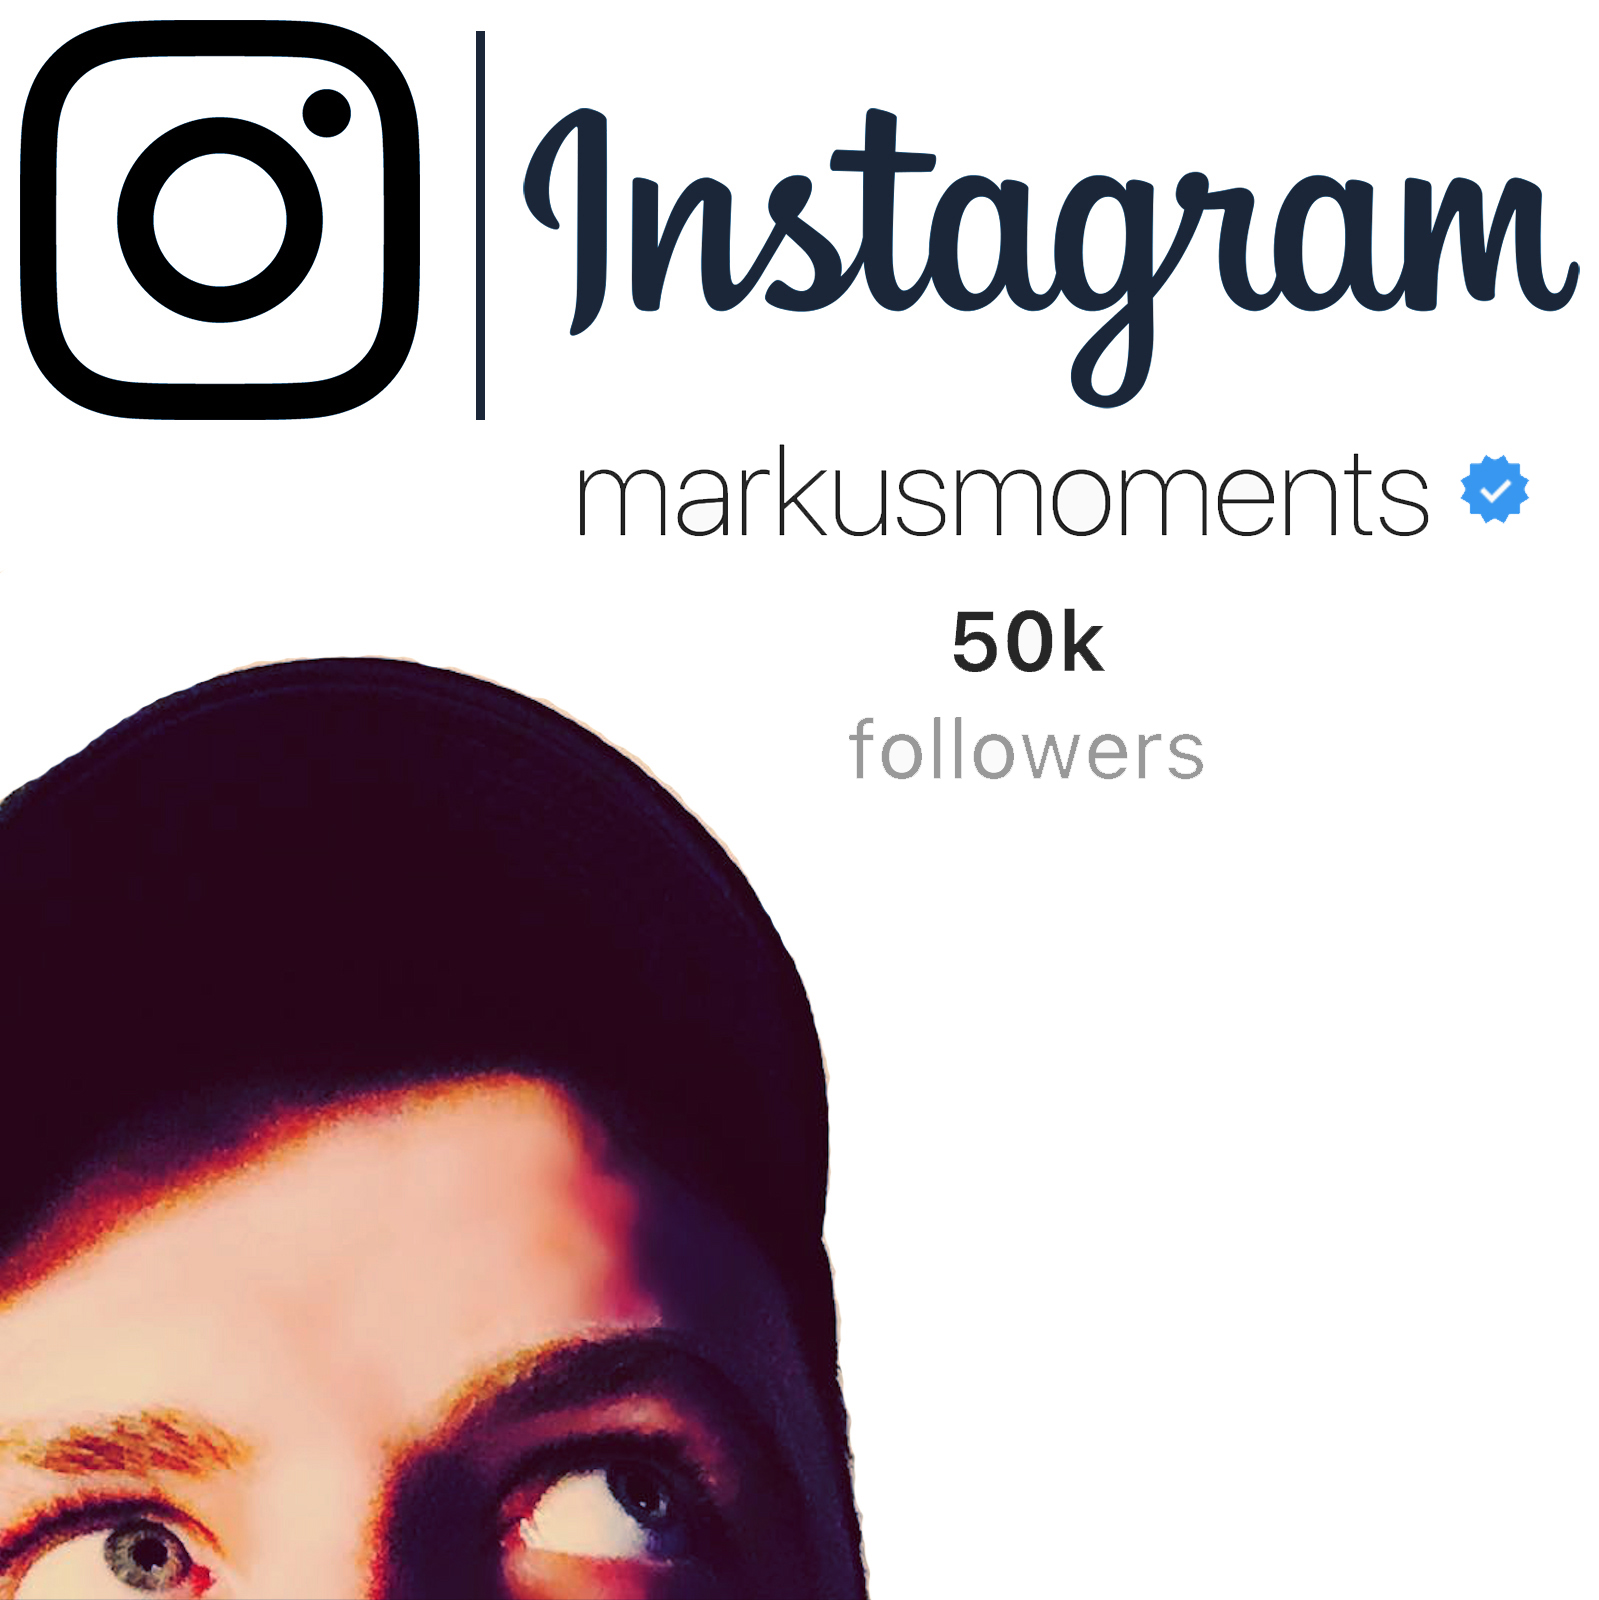 Markus Feehily 50.000 Instagram Followers - @markusmoments